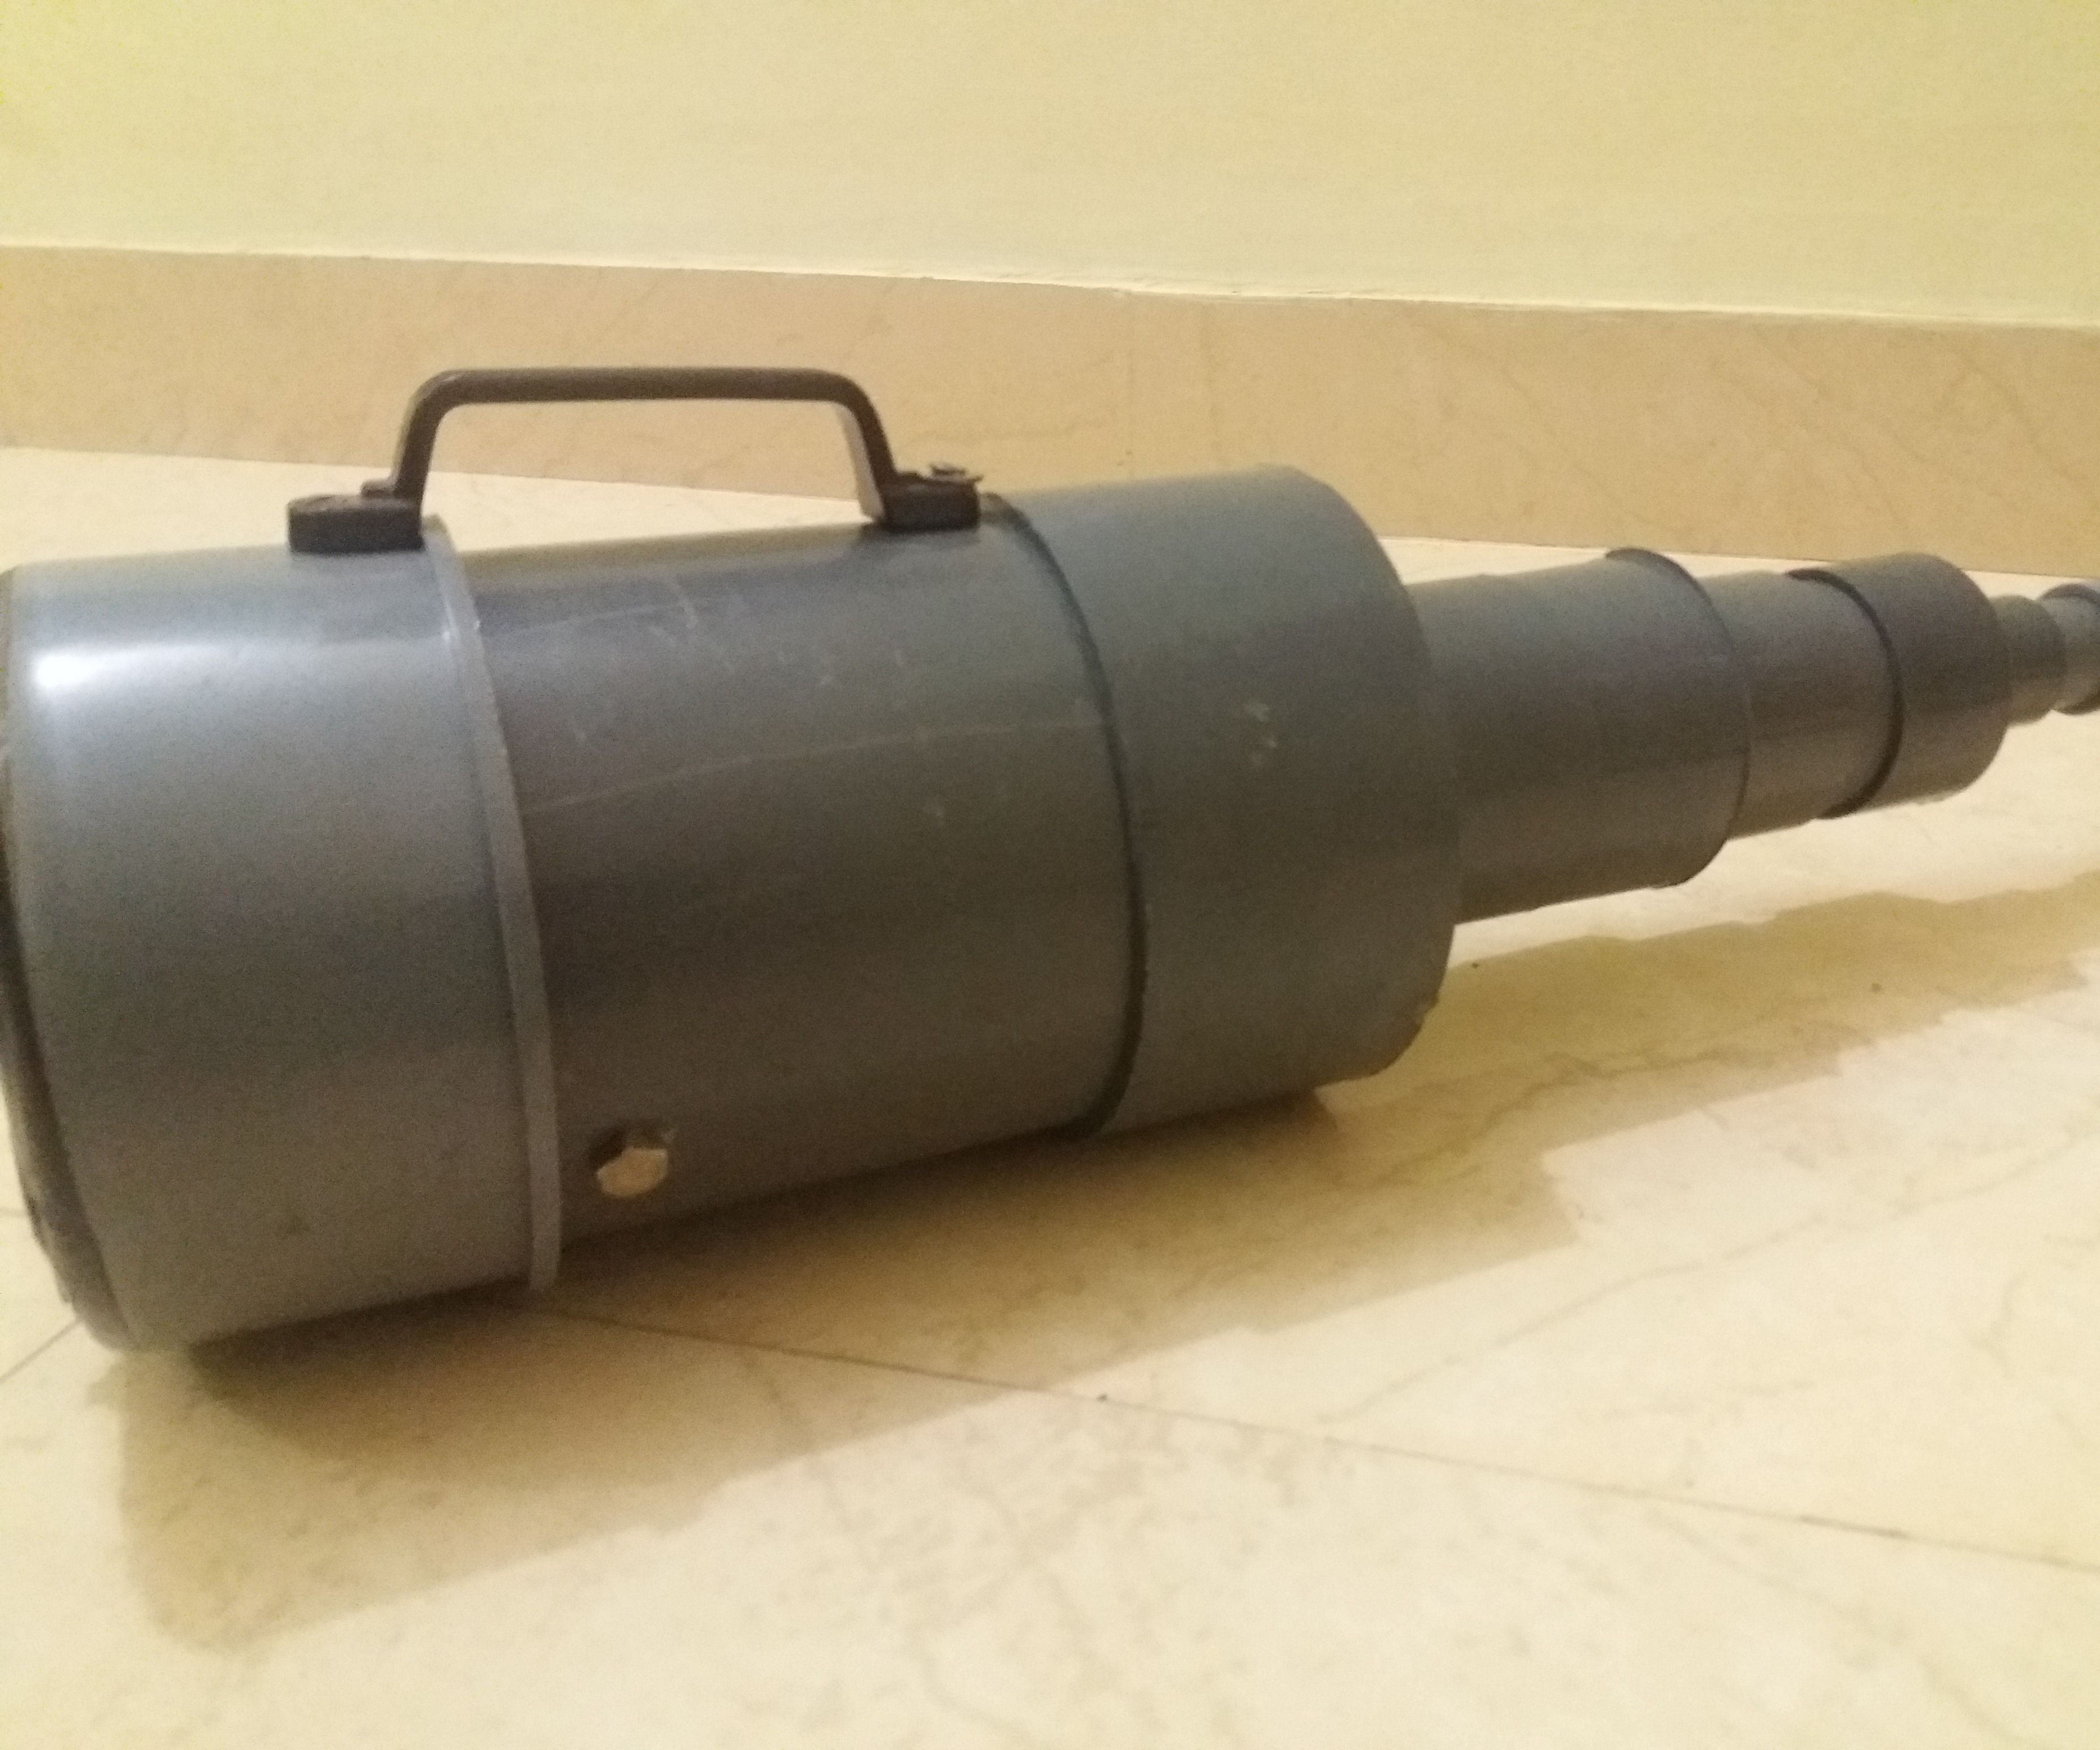 Diy Vacuum Cleaner Out of Pvc